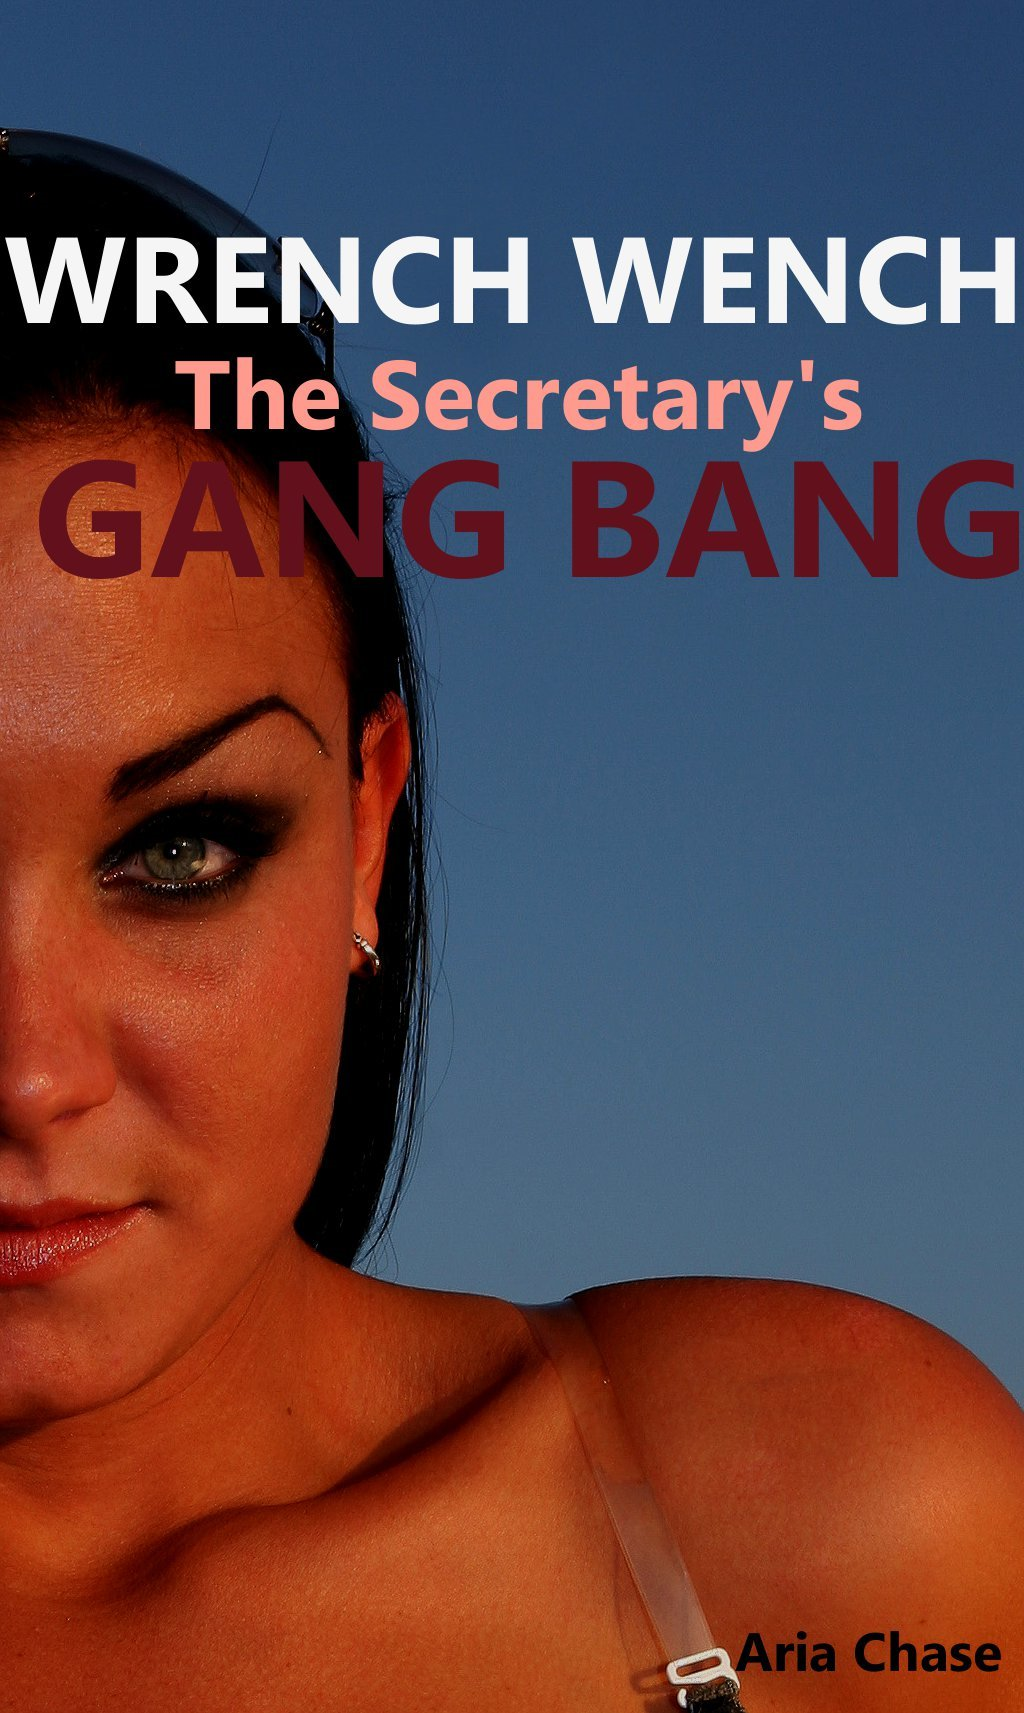 Wrench Wench: The Secretary's Gang Bang